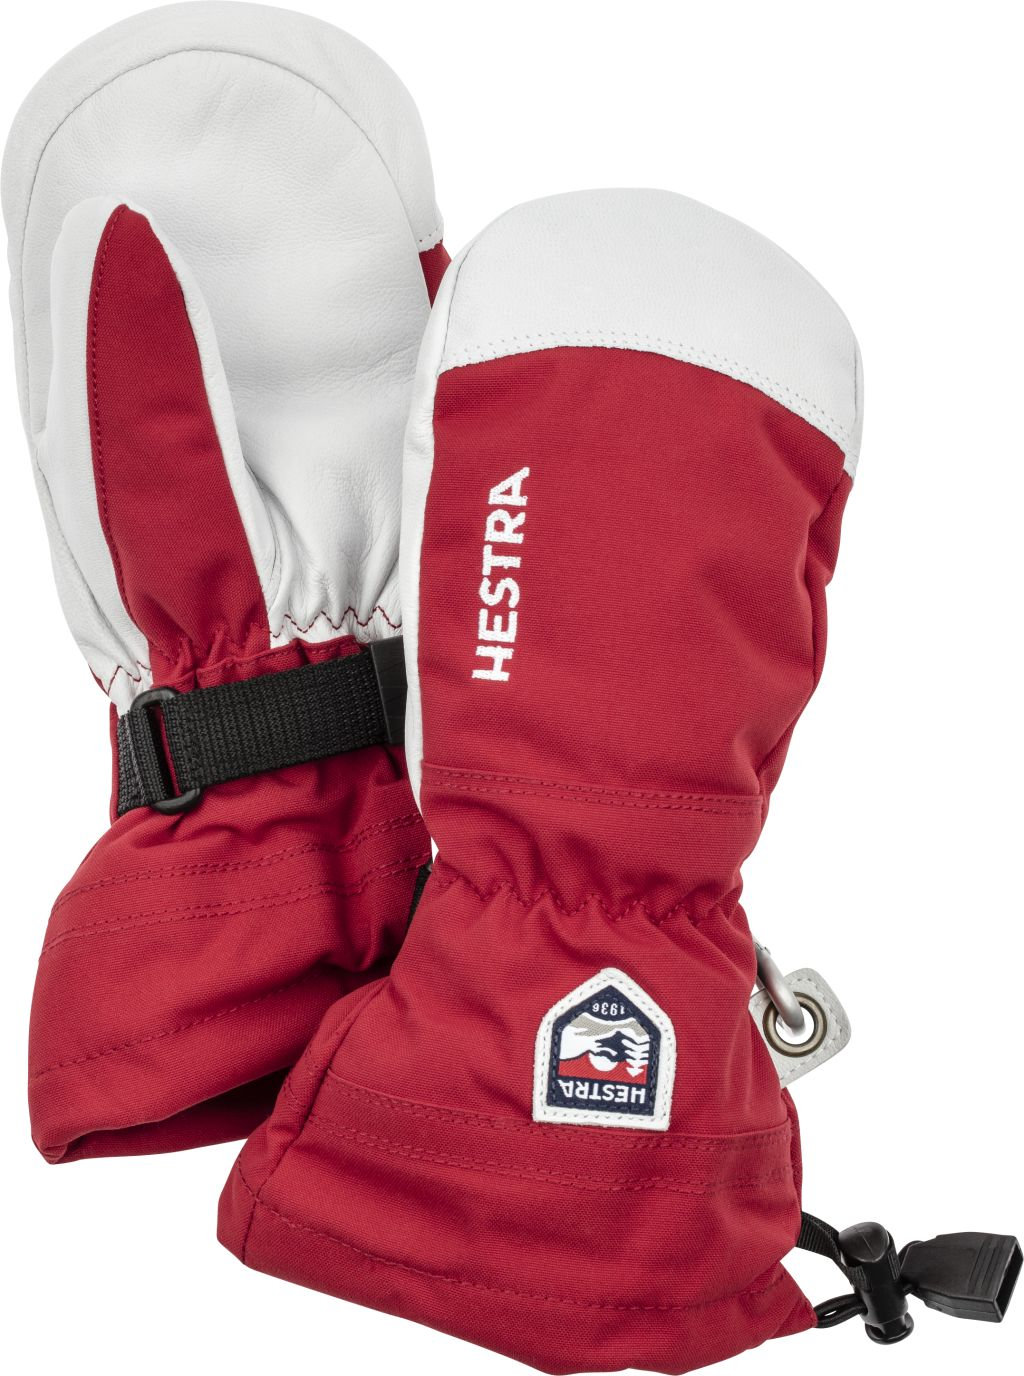 Hestra Army Leather Heli Ski Mitt Jr